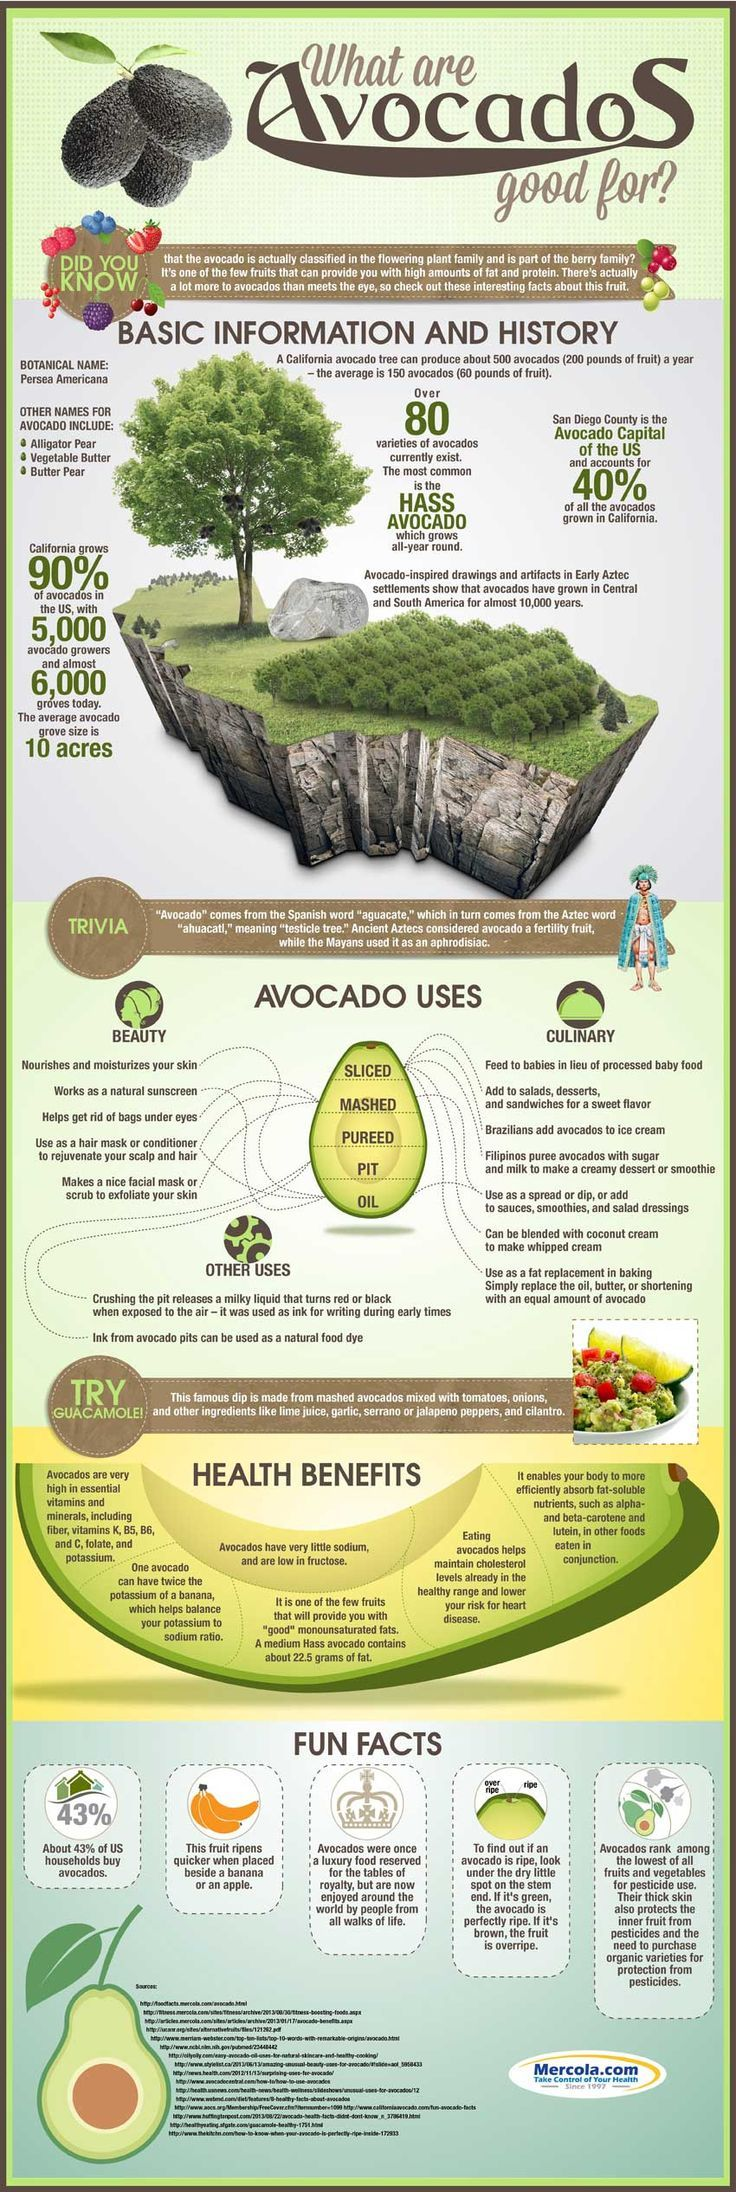 Are Avocados Healthy? (Hint, the answer is YES) - Taste of Divine